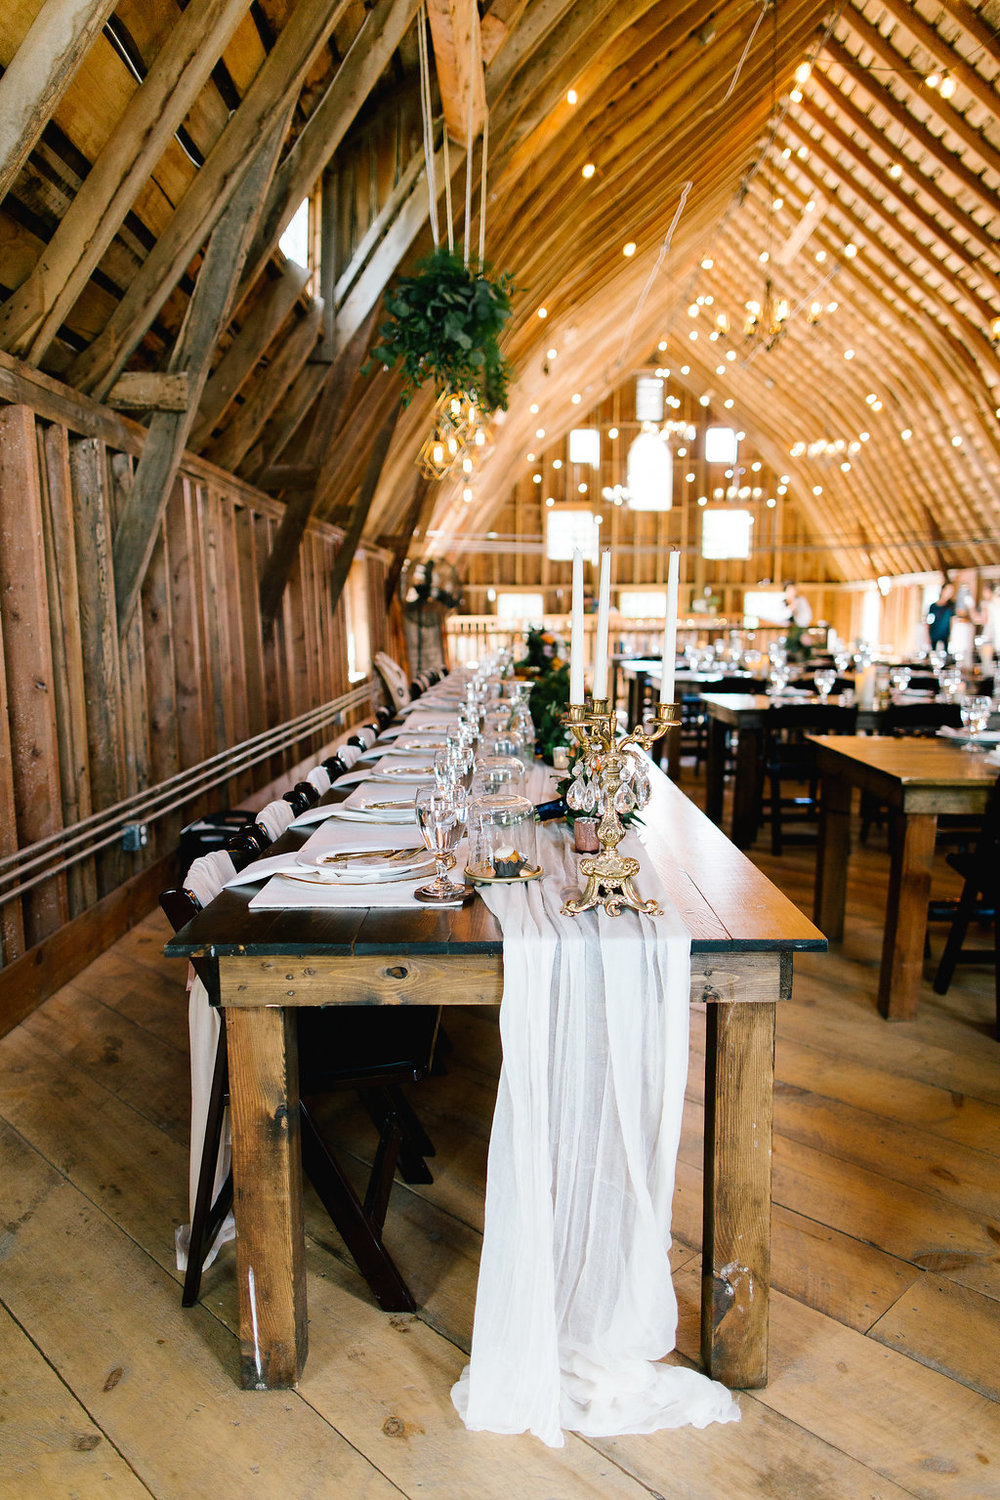 Jade and Seth Bloom Lake Barn wedding | Allison Hopperstad Photography | A Vintage Touch Weddings planning nad design | Day of Coordinating by Sixpence Events 61.JPG